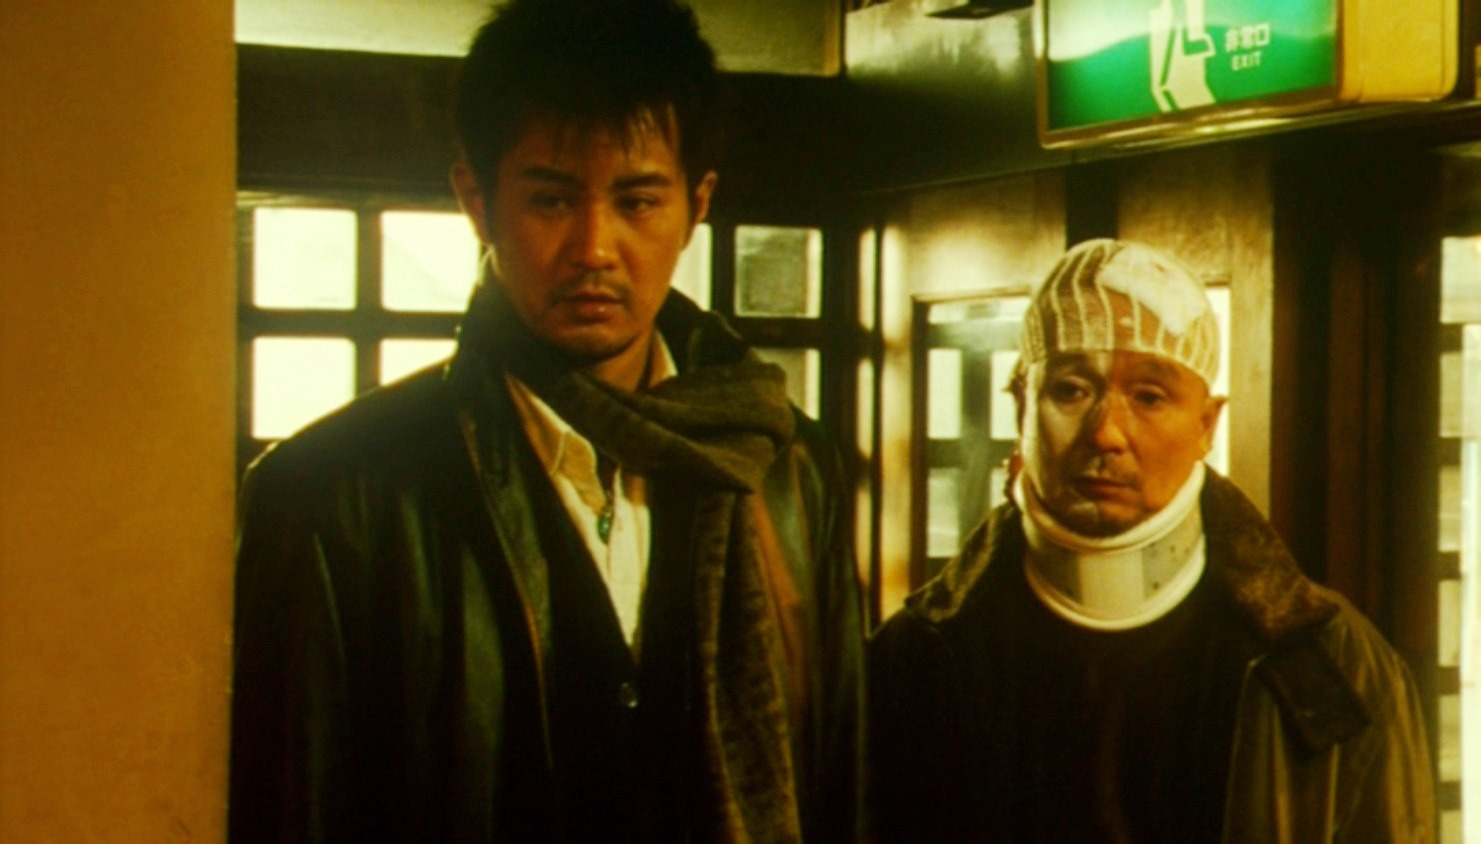 (l to r) Hideki Sone on a quest for his missing brother and Harumi Sone as the battered medium in Gozu (2003)